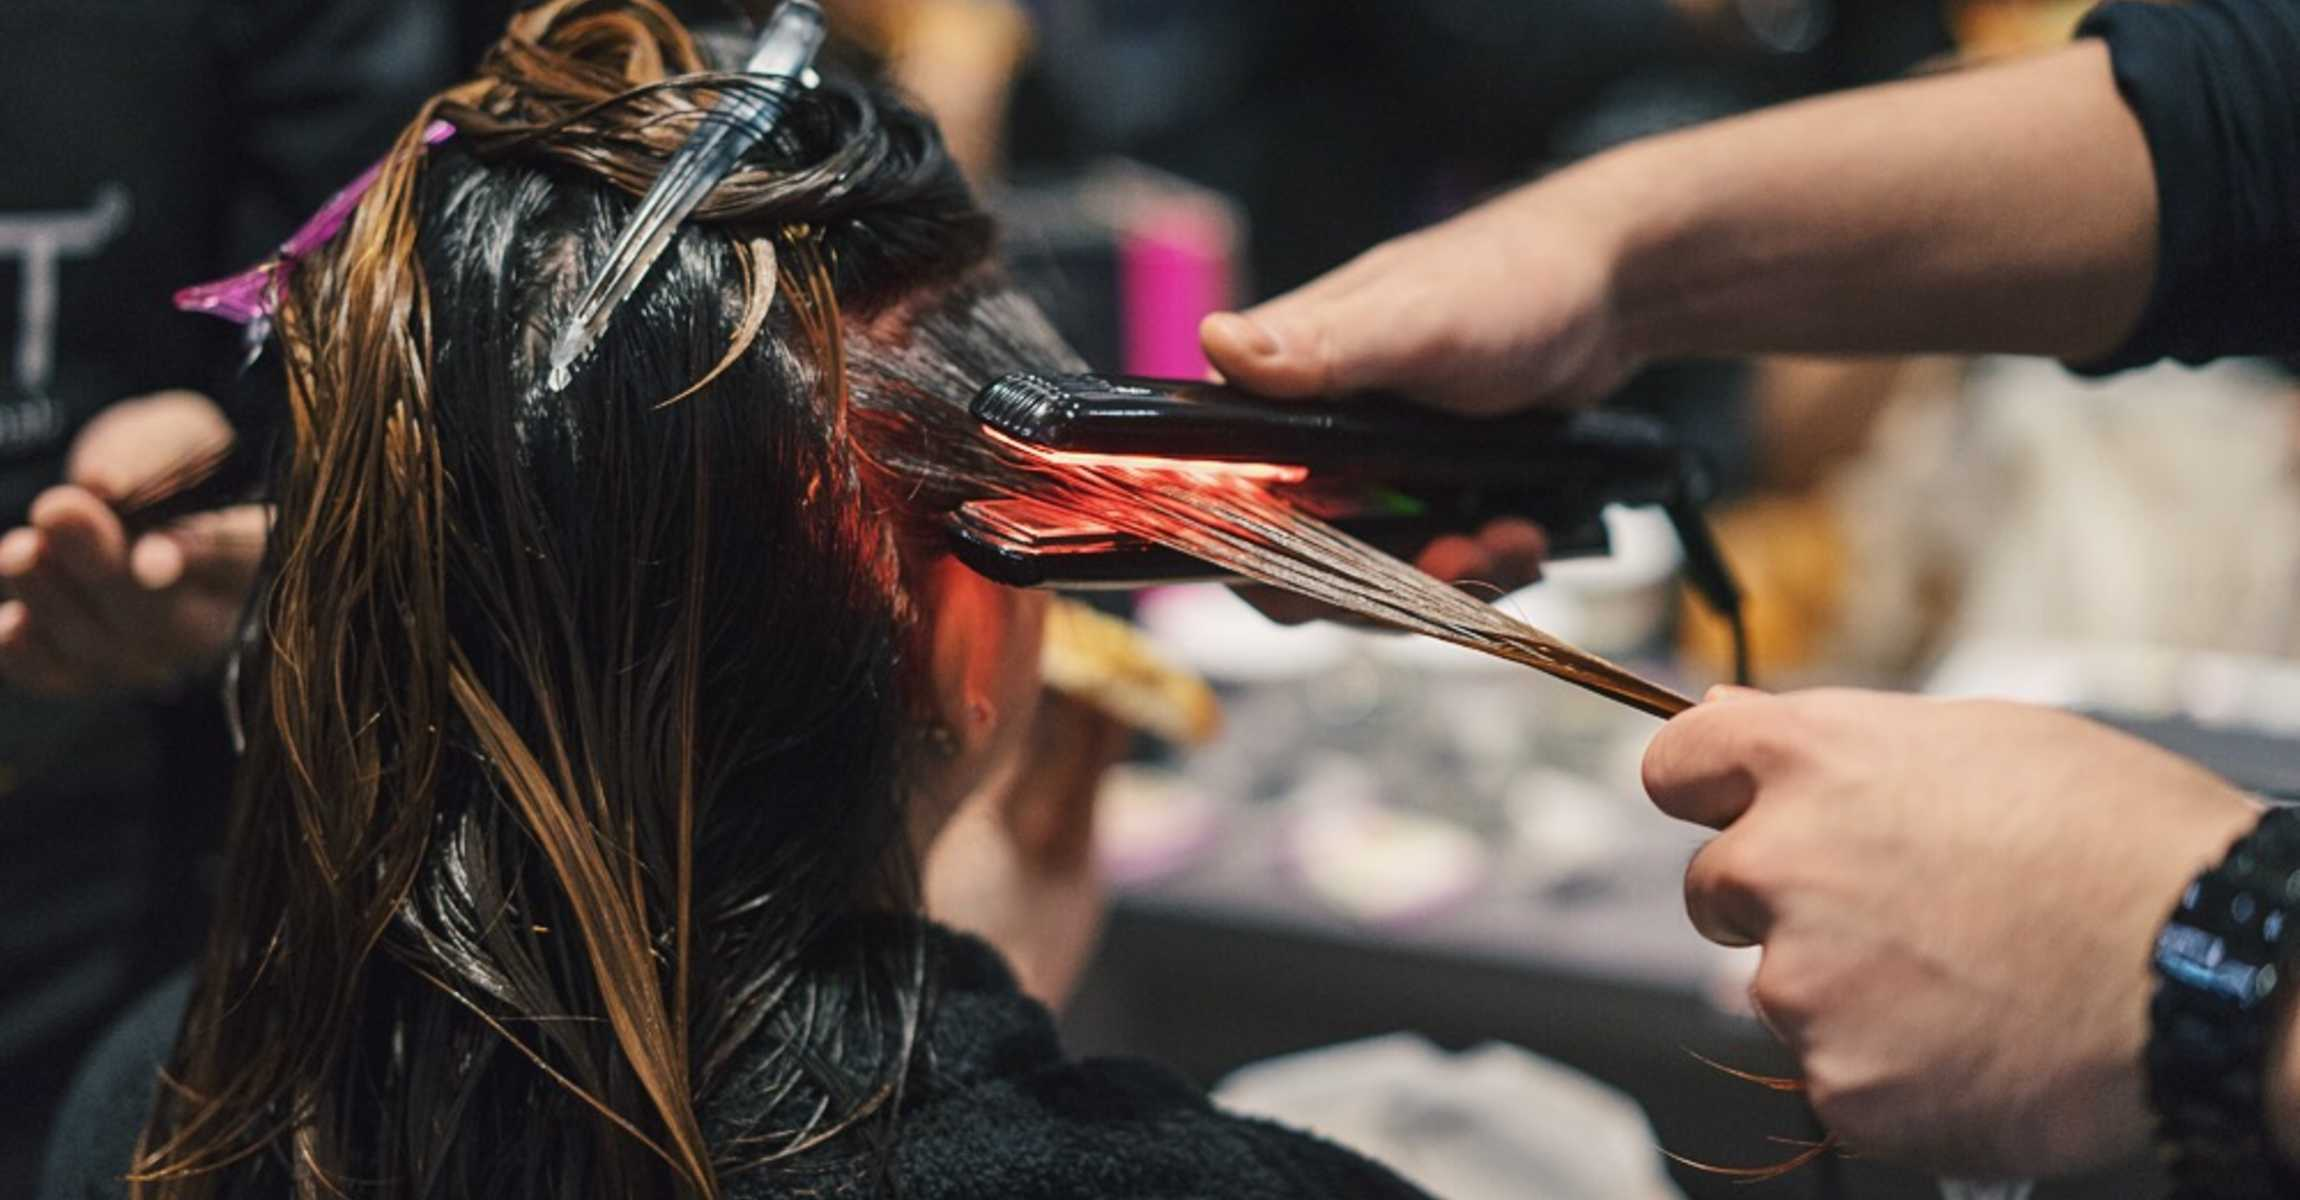 This Hair Treatment from Chez Vous Hair uses Ultrasonic Waves to Penetrate Your Hair with Skincare Ingredients